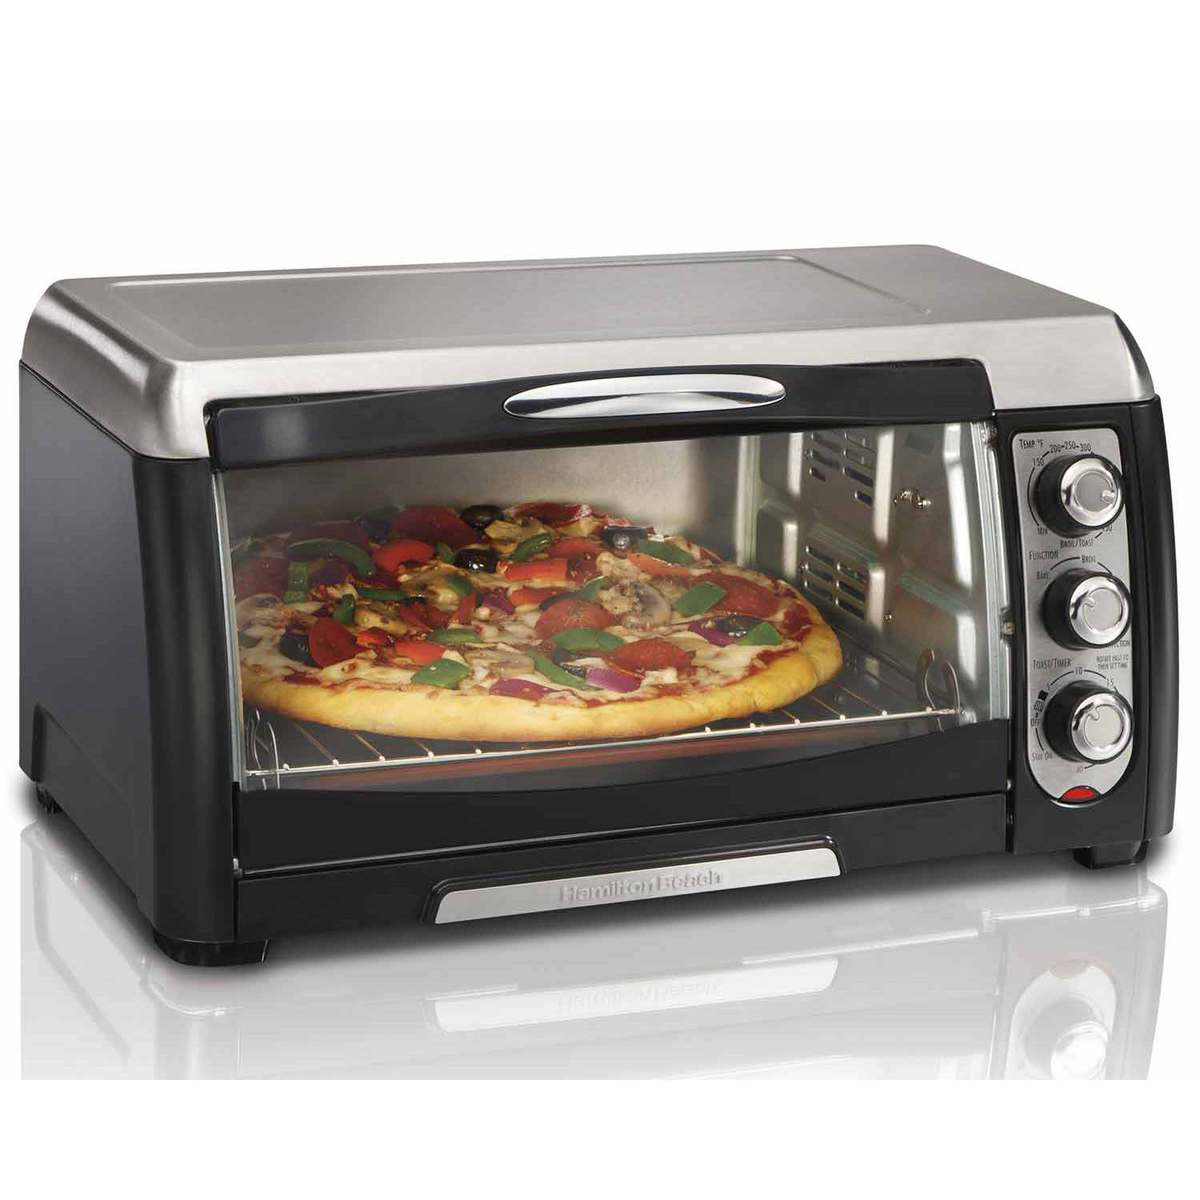 Convention Oven Convection Toaster Oven 31331 Hamiltonbeach